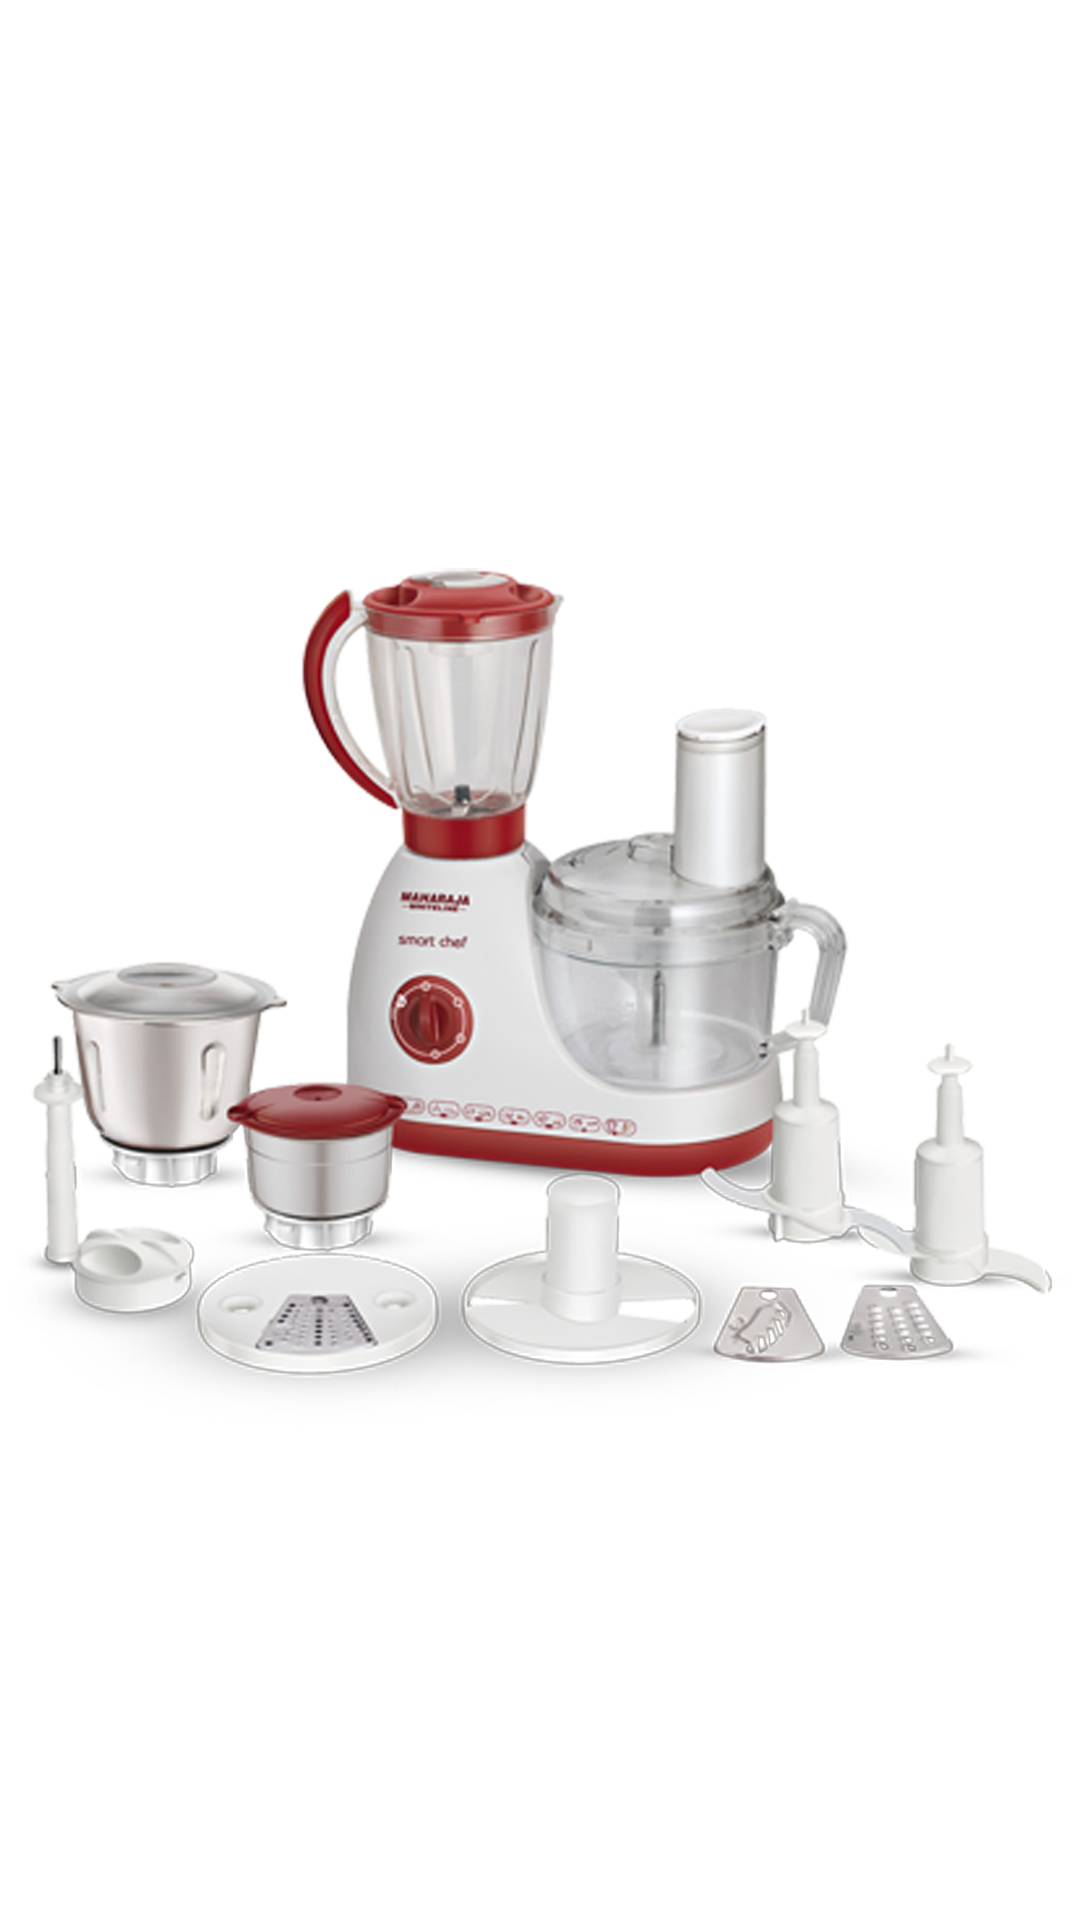 Maharaja Whiteline Smart Chef FP-100 600 W Food Processor (White & Red)